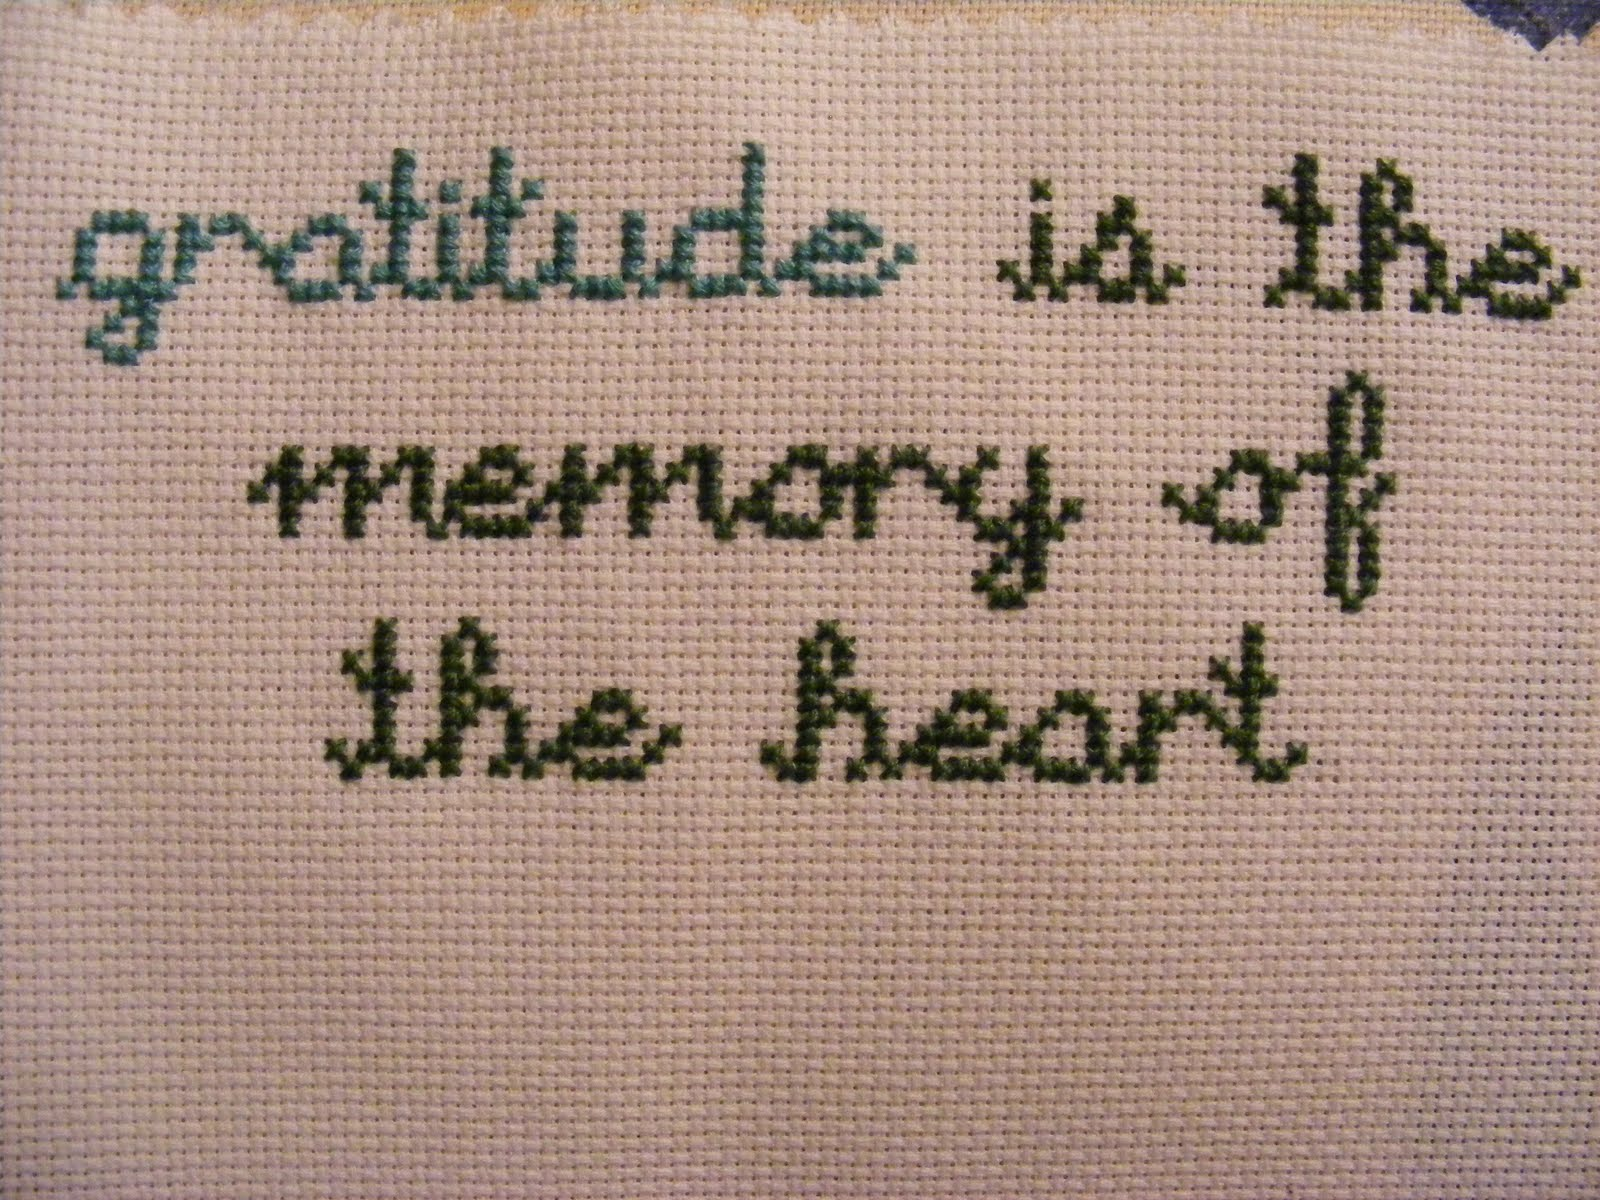 cursive r in cross stitch will end up looking like an n or will just be a bit confusing im not completely satisfied with some of these letters